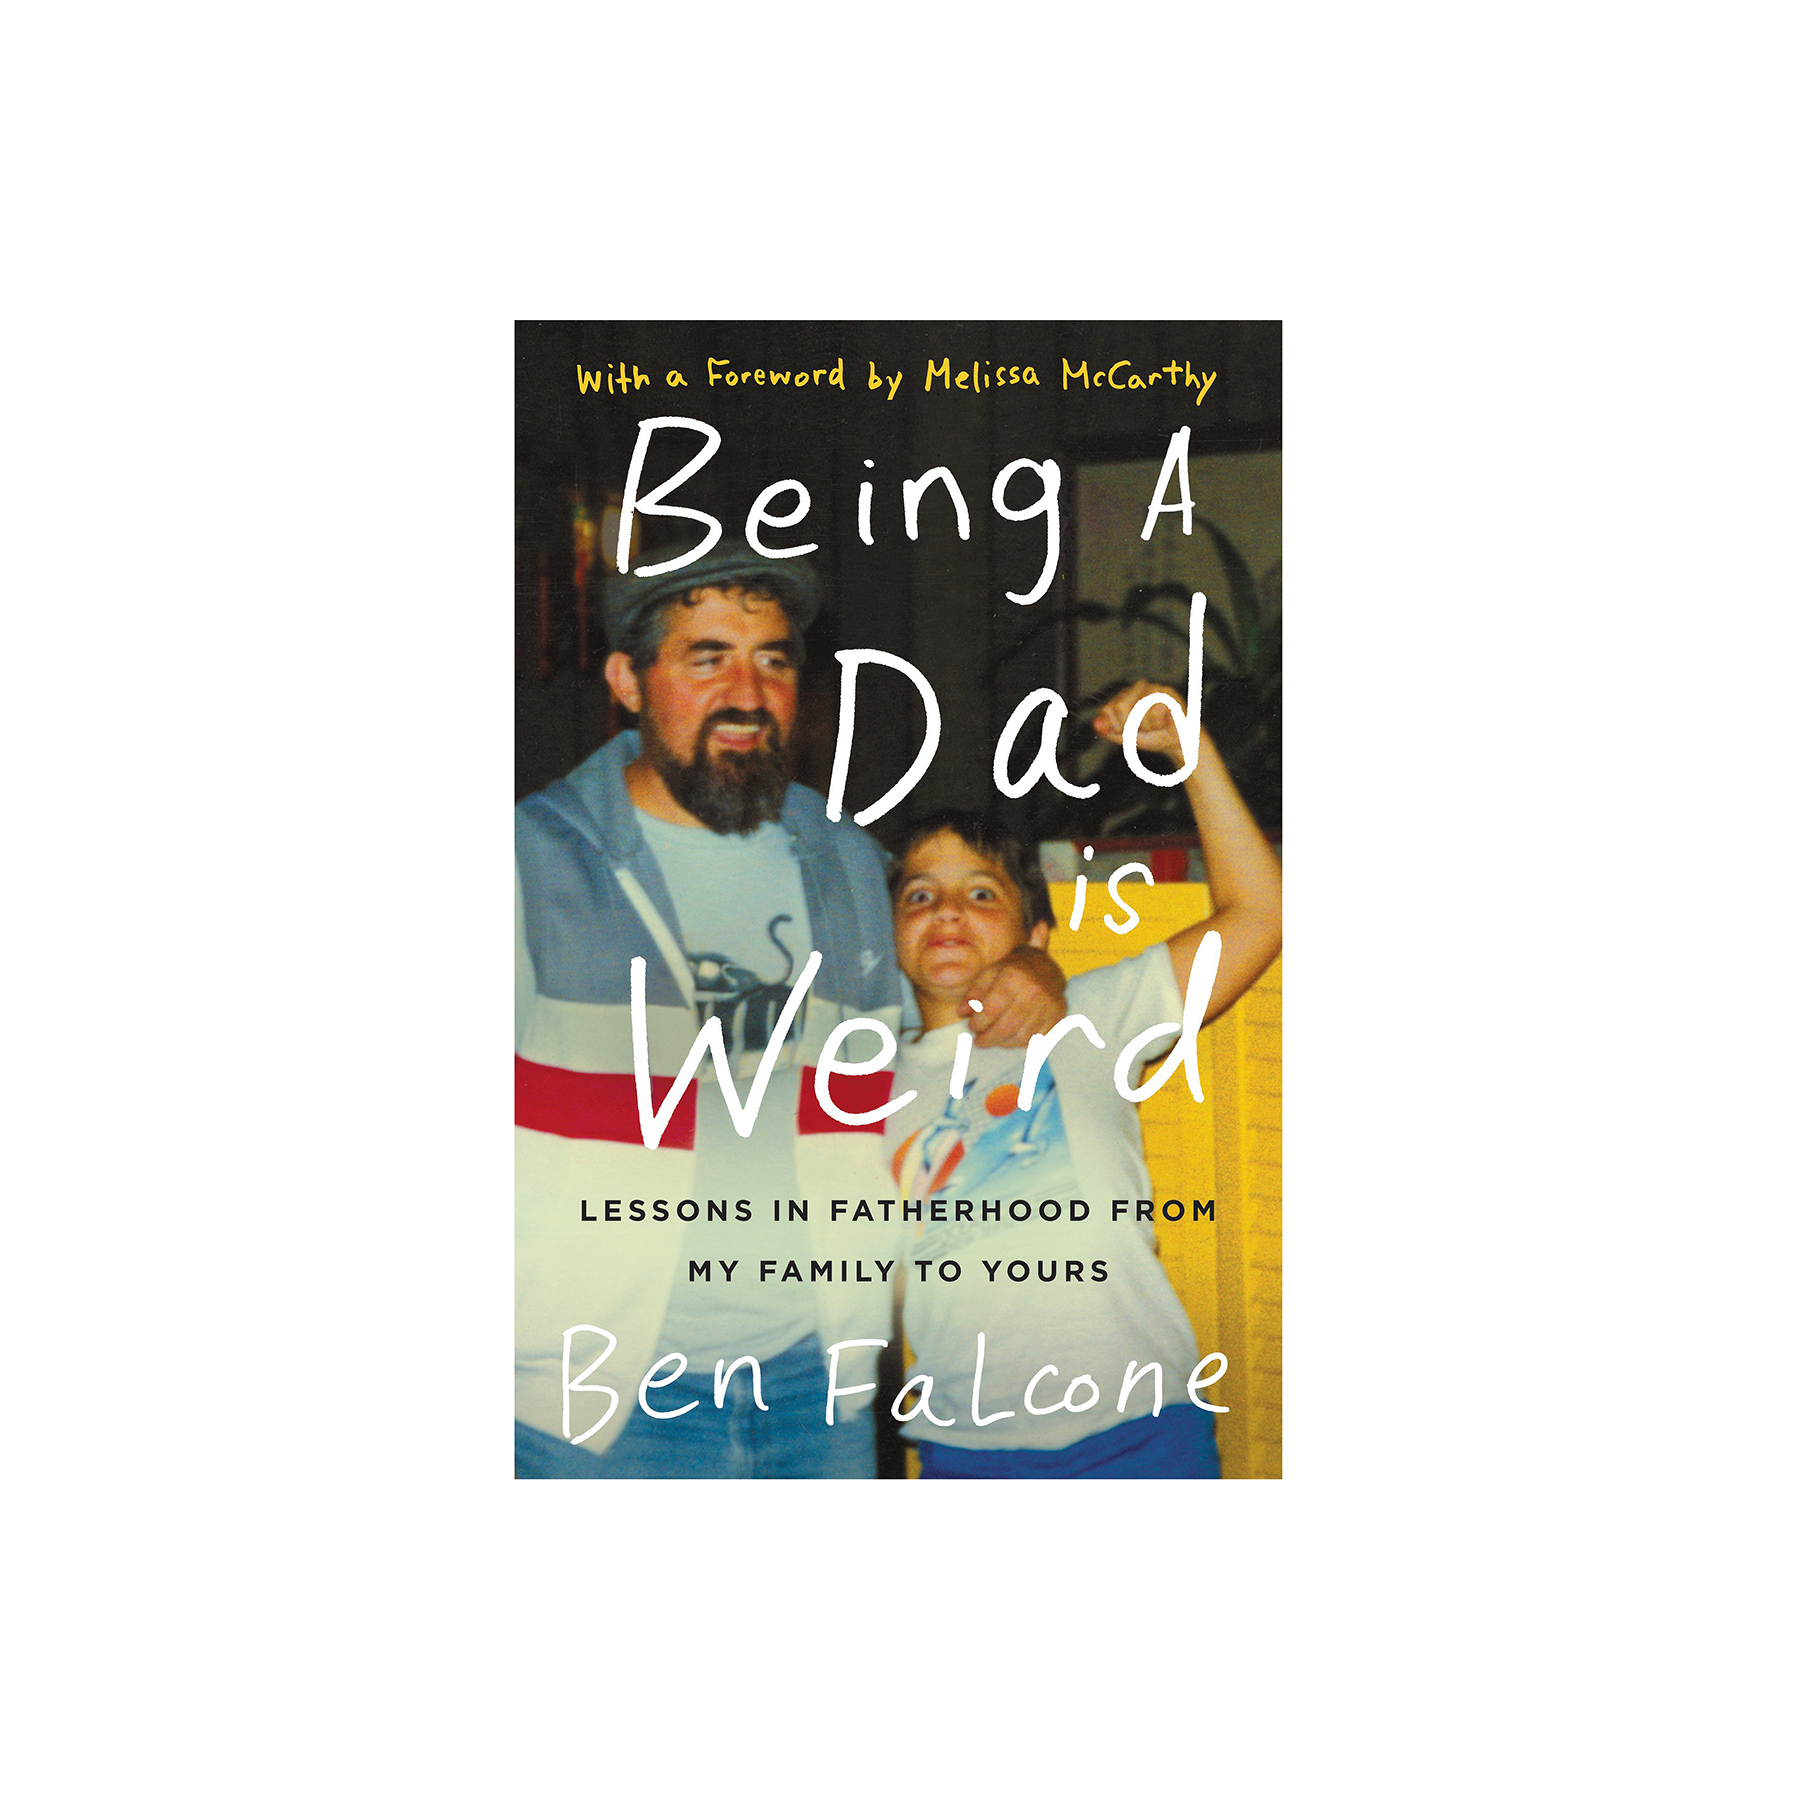 dad-weird-fatherhood-falcone